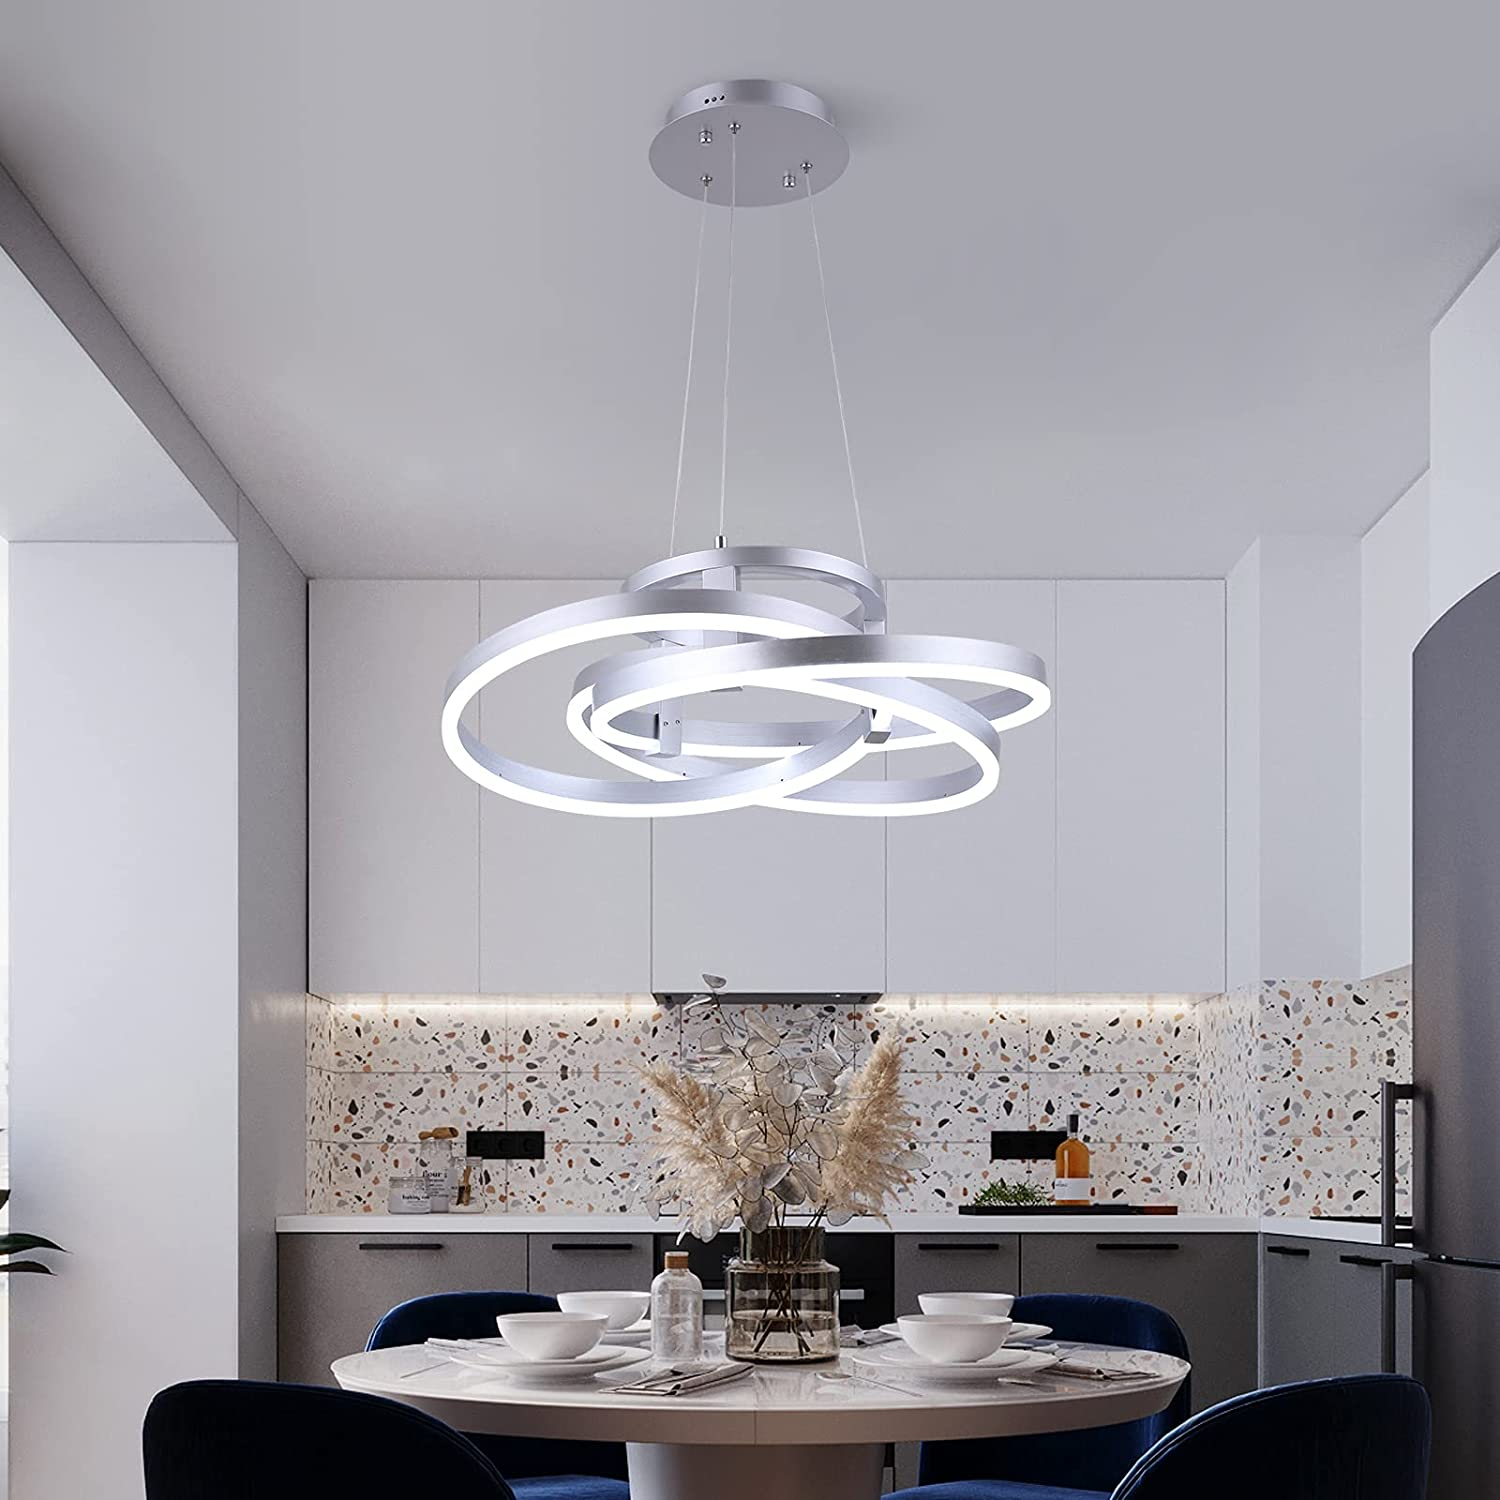 Maxax LED 3 Ring Chandelier Acrylic Pendant 67% OFF of fixed price Denver Mall Modern Indus Light